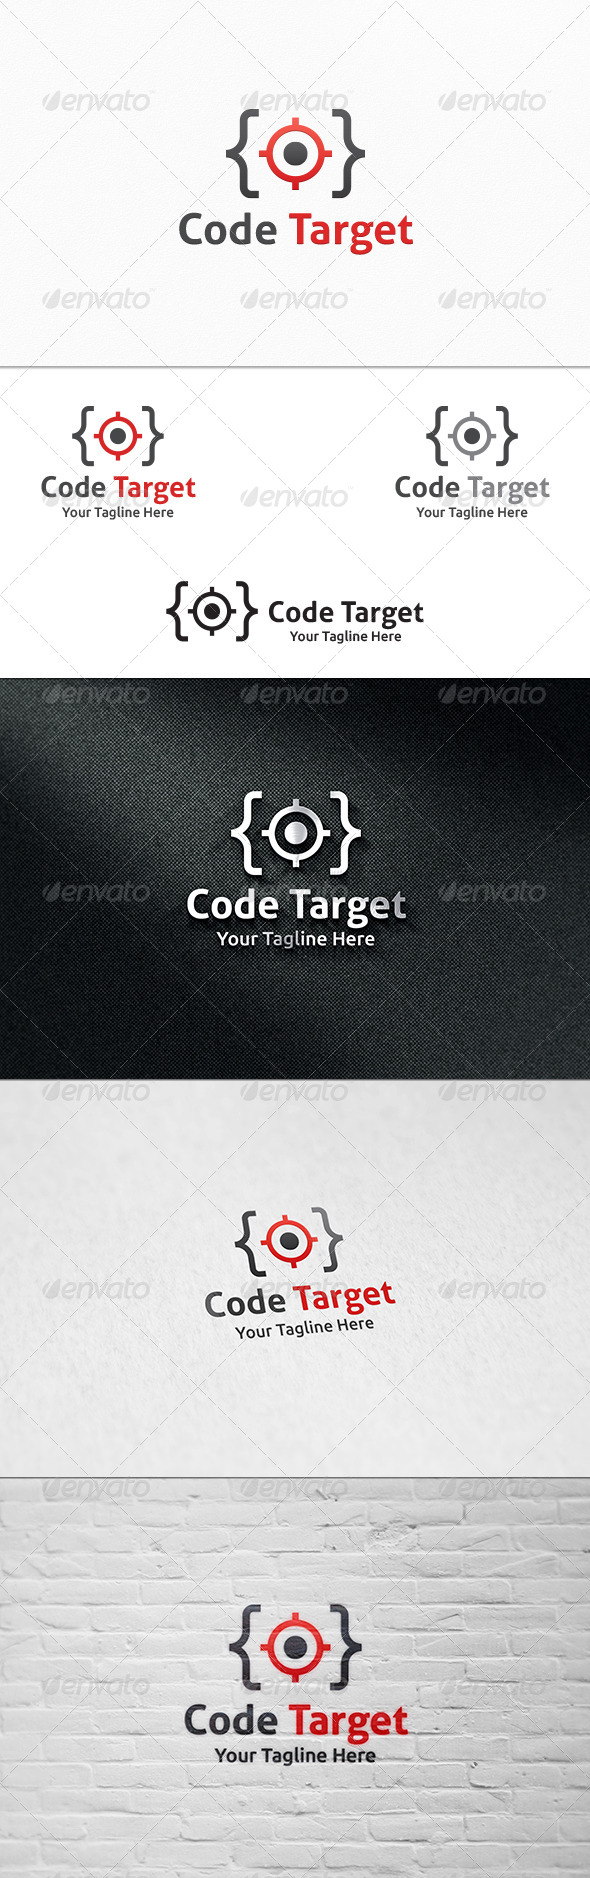 GraphicRiver Code Target Logo Template 8293856